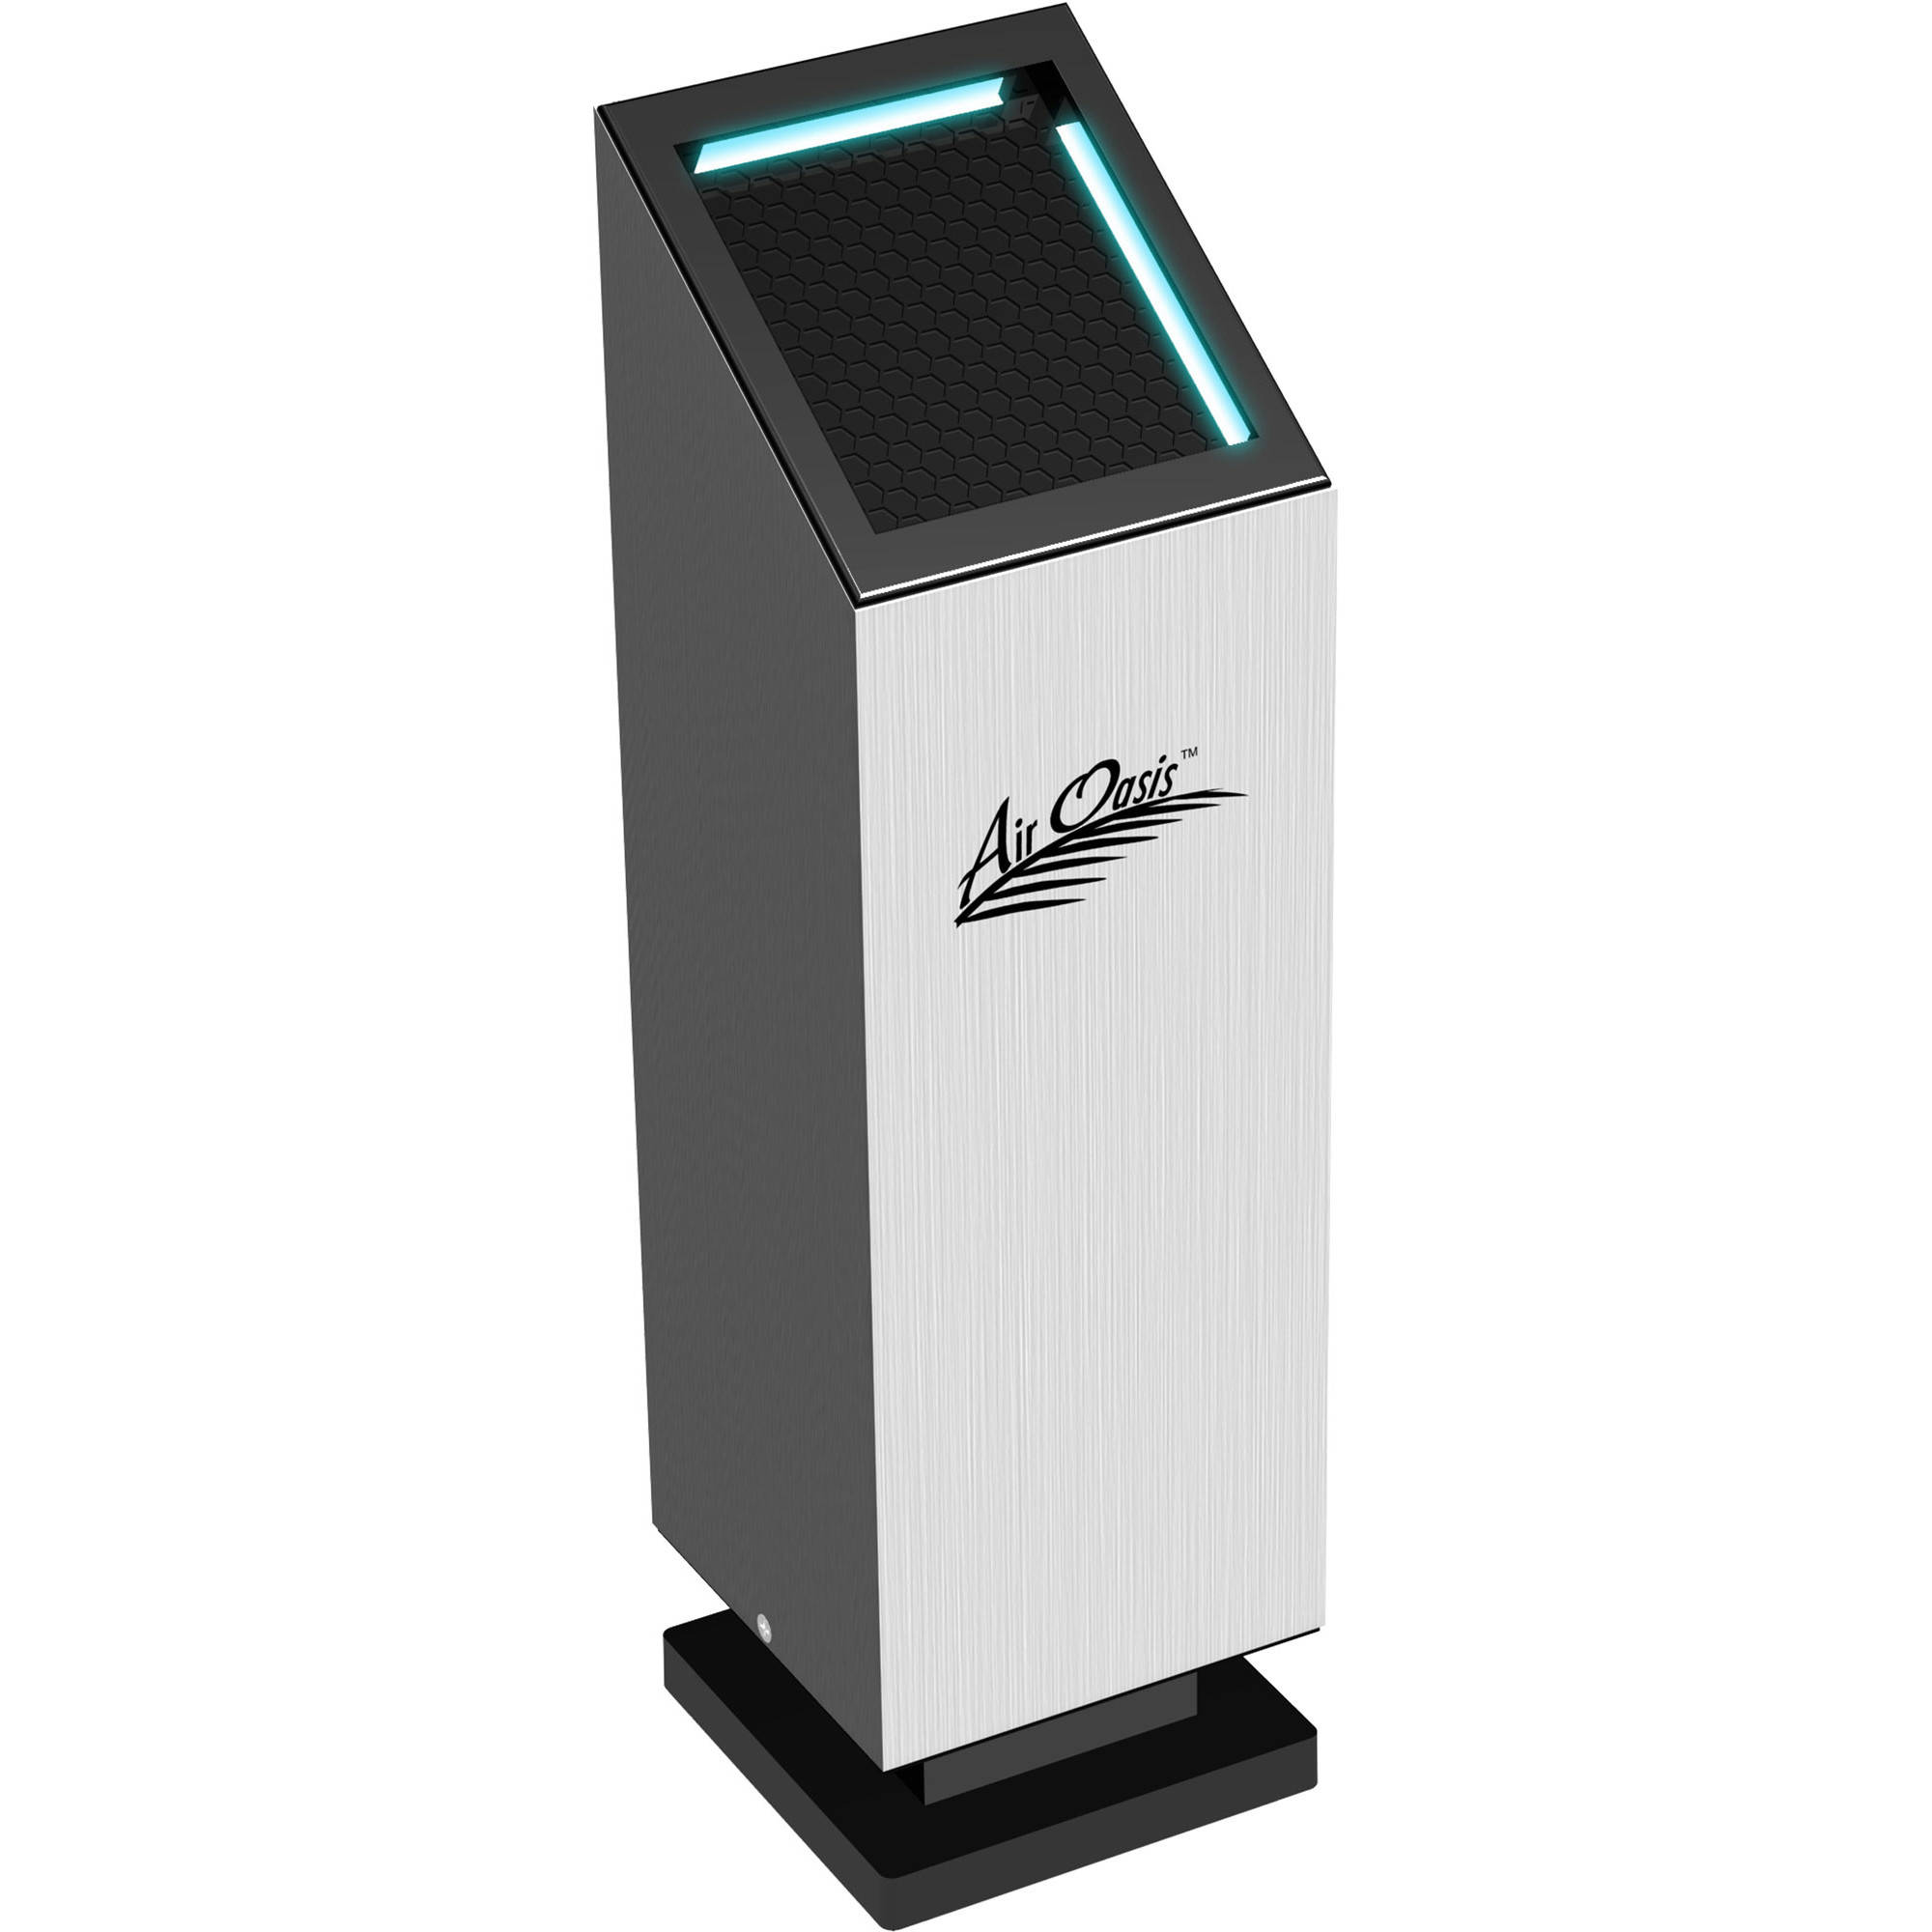 Image of Air Oasis 3000 G3